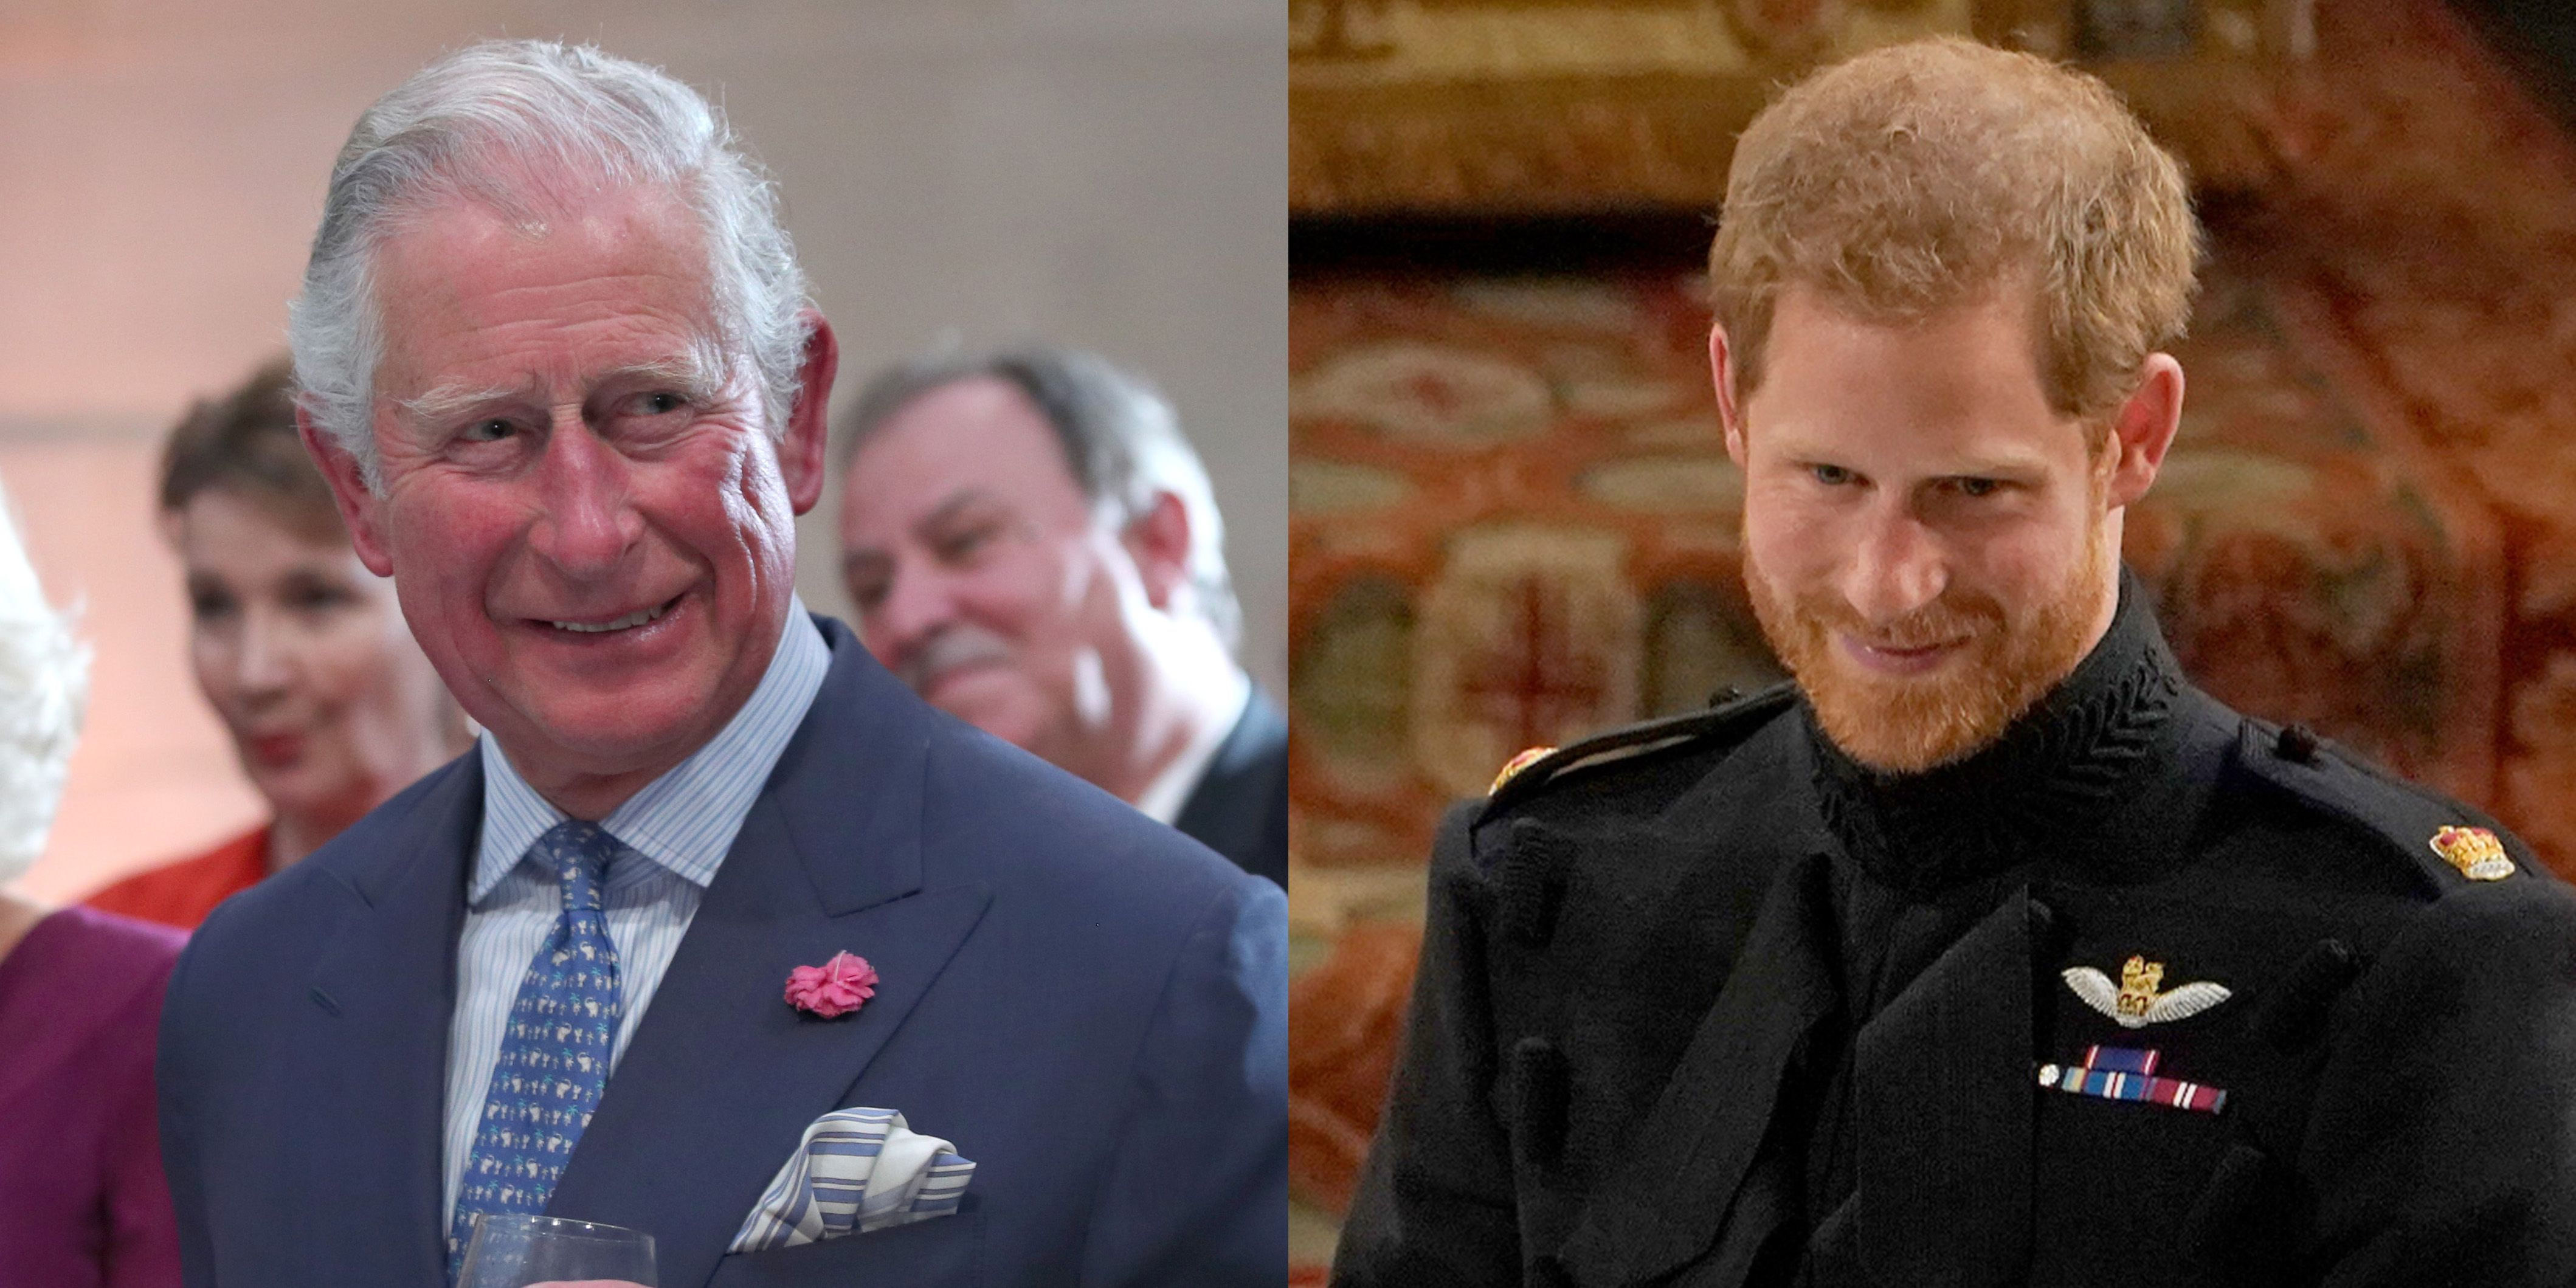 Princes Charless Royal Wedding Speech About Prince Harry Brought Everyone to Tears